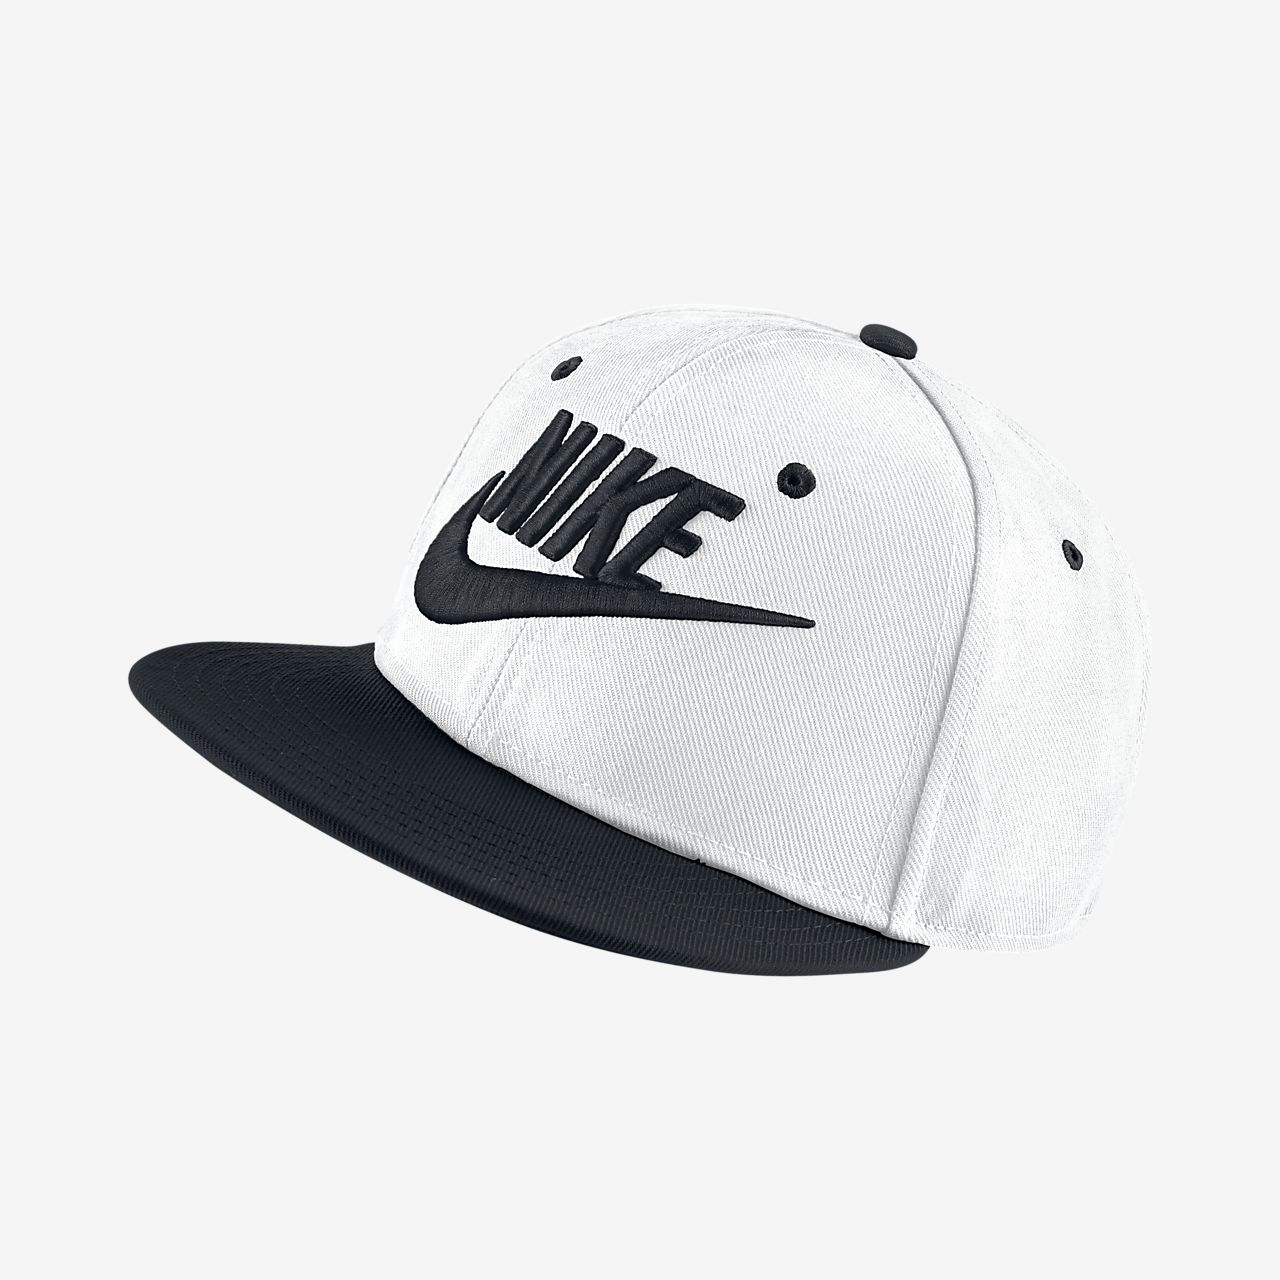 3975c5e9b27 Nike Futura True Older Kids  Adjustable Hat. Nike.com NO